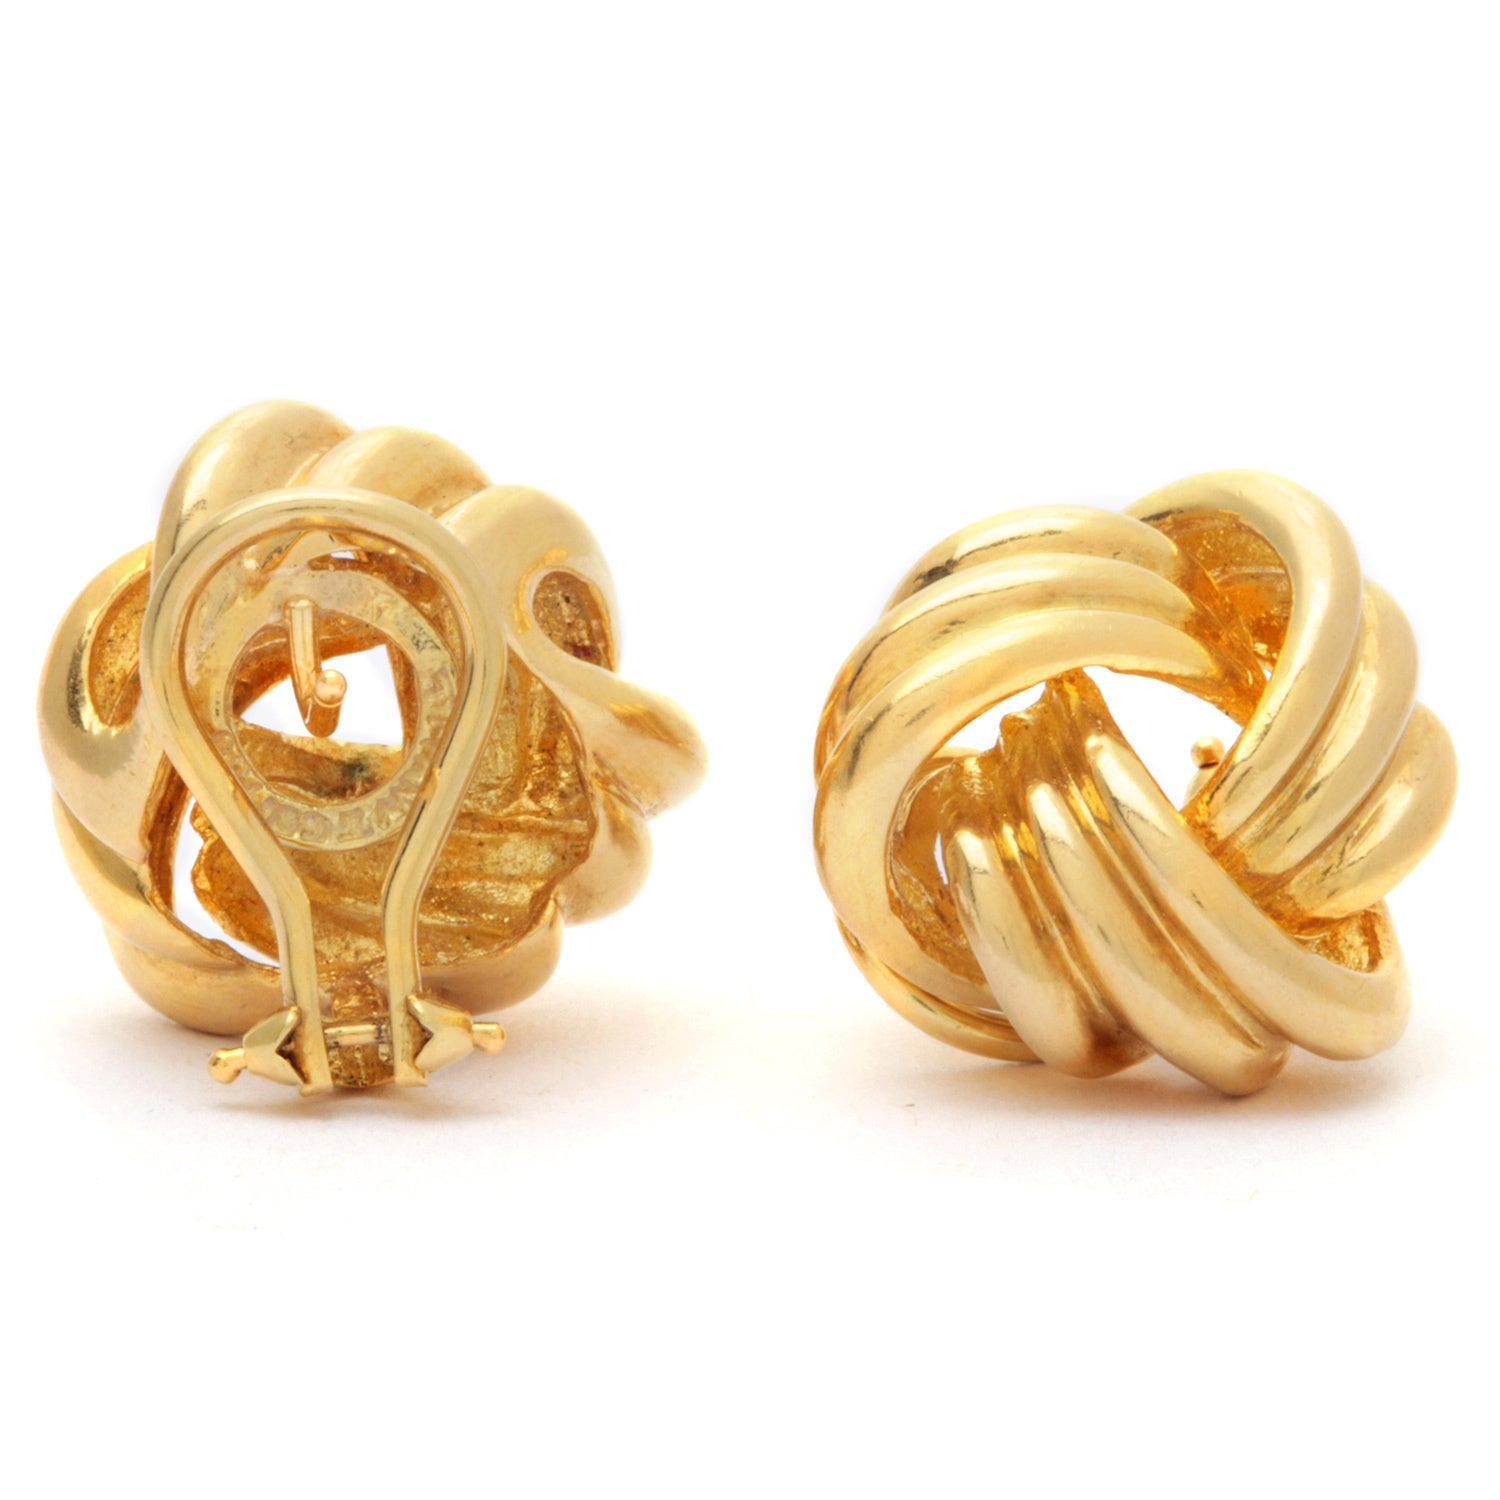 9ad572af0 Shop Pre-owned Tiffany & Co. 18k Yellow Gold Love Knot Earrings - Ships To  Canada - Overstock - 9173661